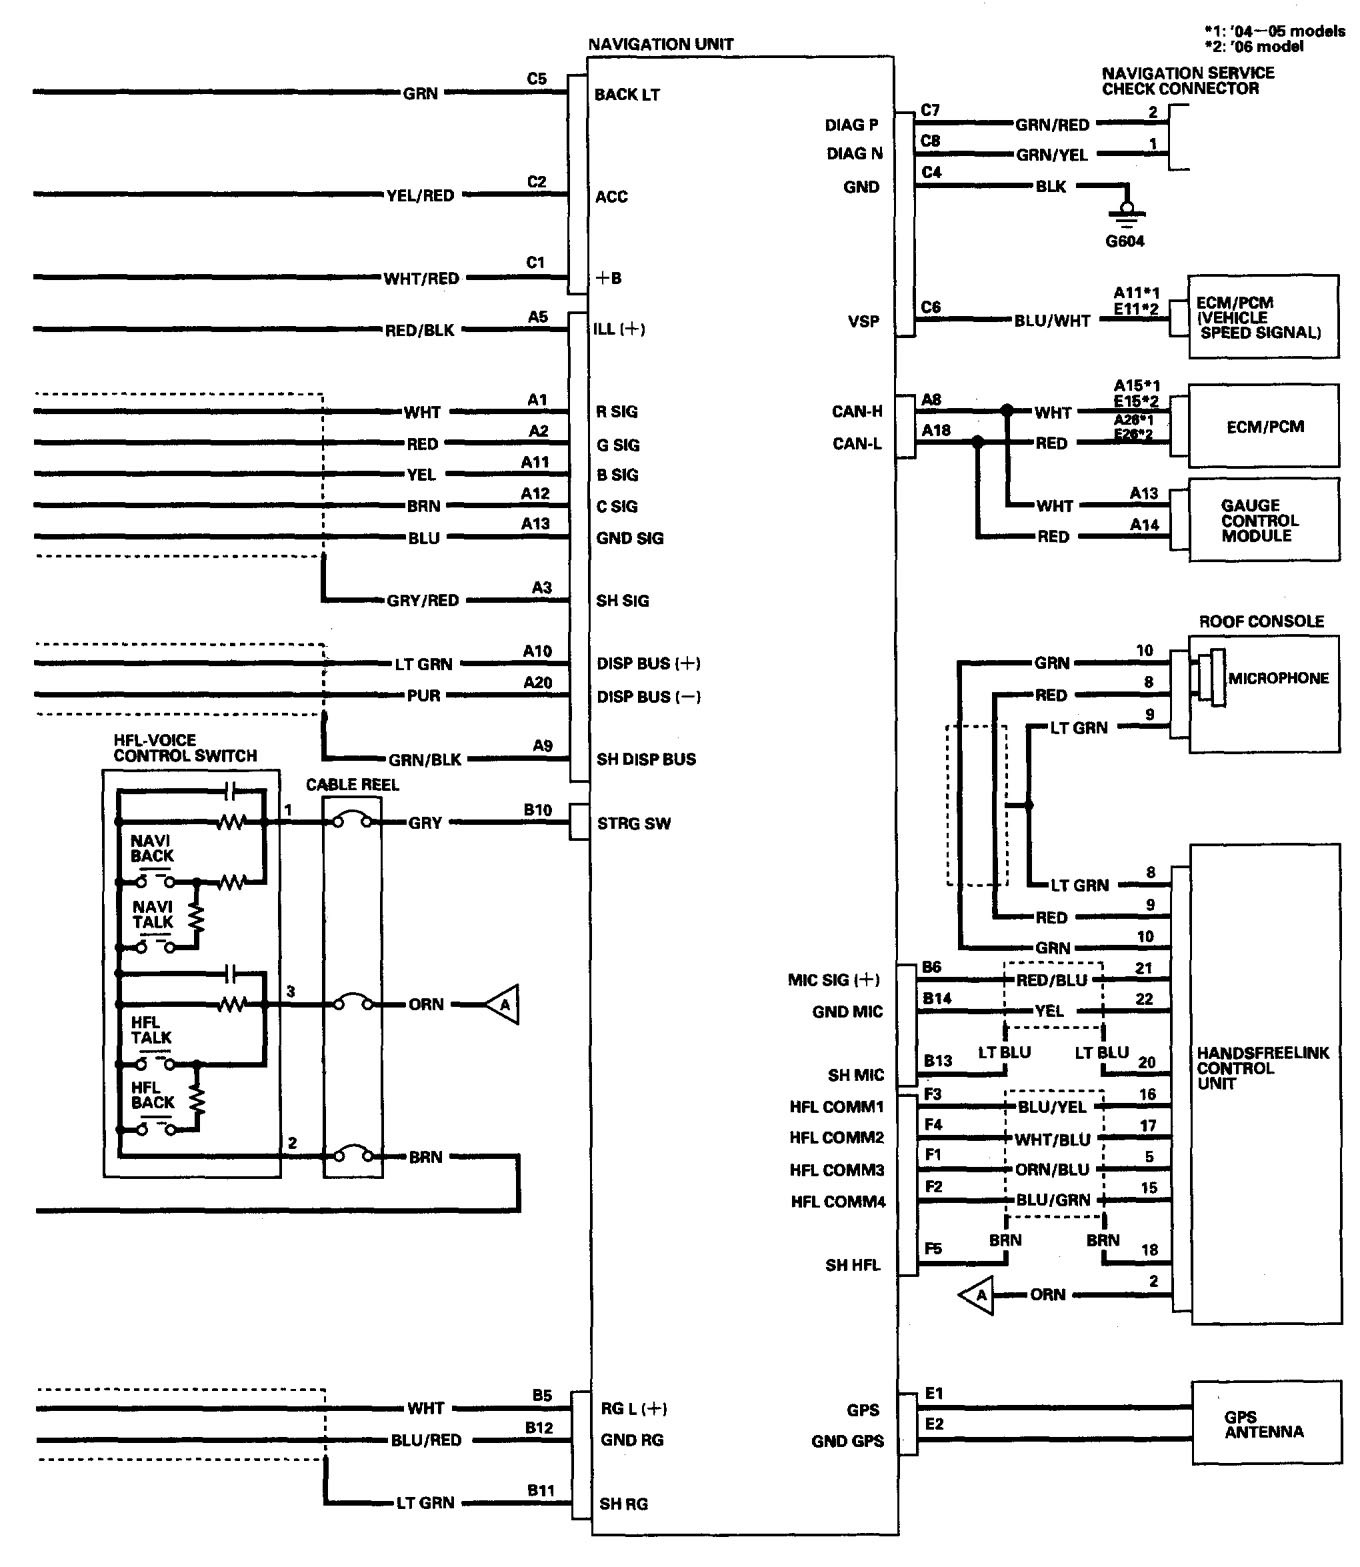 acura wiring diagrams general wiring diagram information u2022 rh  velvetfive co uk 94 Integra Fuse Box Diagram 1992 Acura Integra Wiring- Diagram